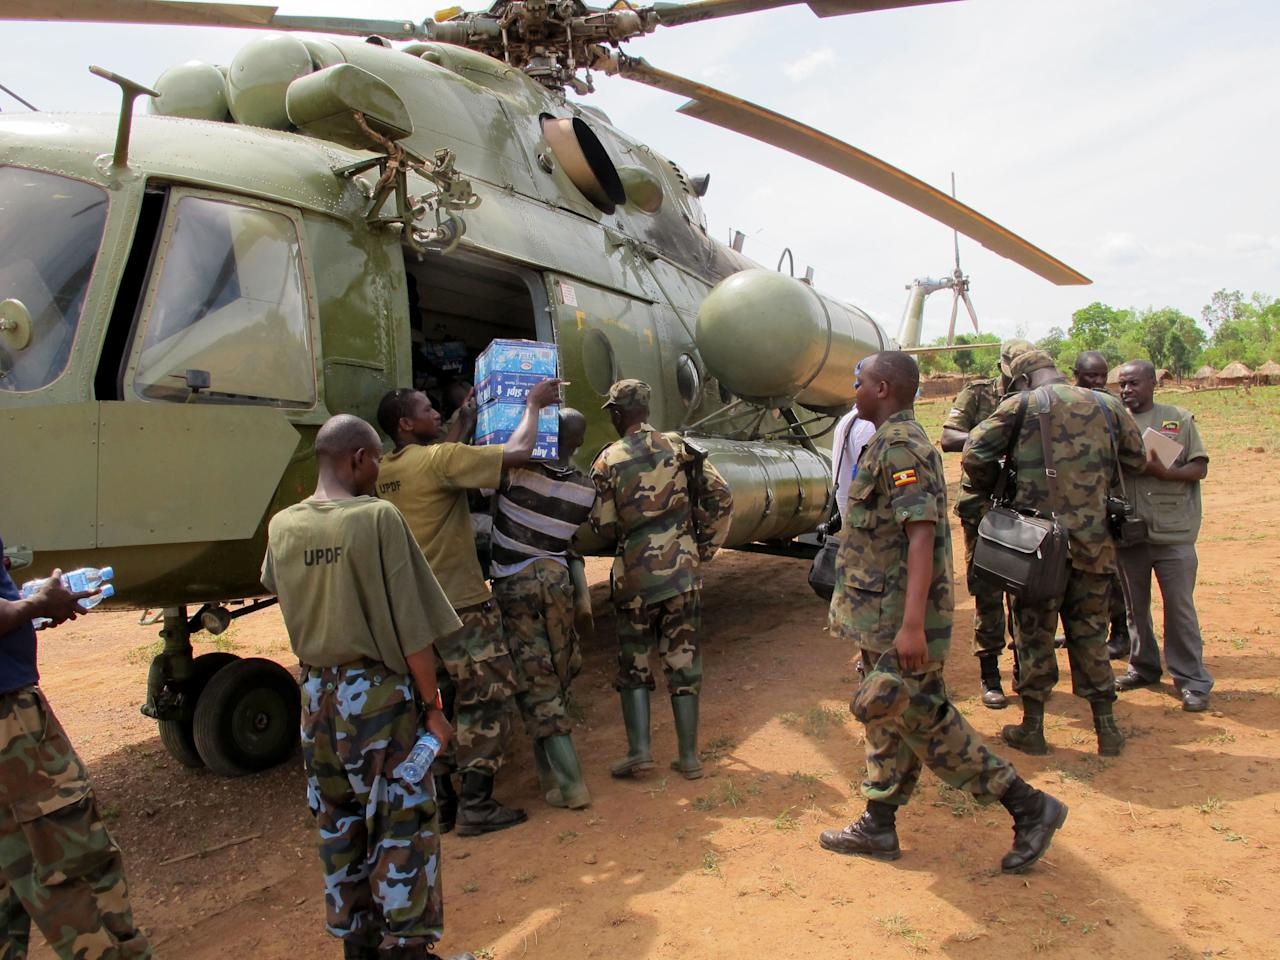 In this photo of Wednesday April 18, 2012 Ugandan troops load supplies to be sent to squadshunting for rebel leader Joseph Kony deep in the Central African Republic jungle. For Ugandan soldiers tasked with catching Joseph Kony, the real threat is not the elusive Central Africa warlord and his brutal gang. Encounters between Ugandan troops and Lords Resistance Army rebels are so rare that the Kony hunters worry about other things when they walk the jungle: armed poachers, wild beasts, honey bees, and even a widely-ranging fly that torments their ears during day. (AP Photo/Rodney Muhumuza)